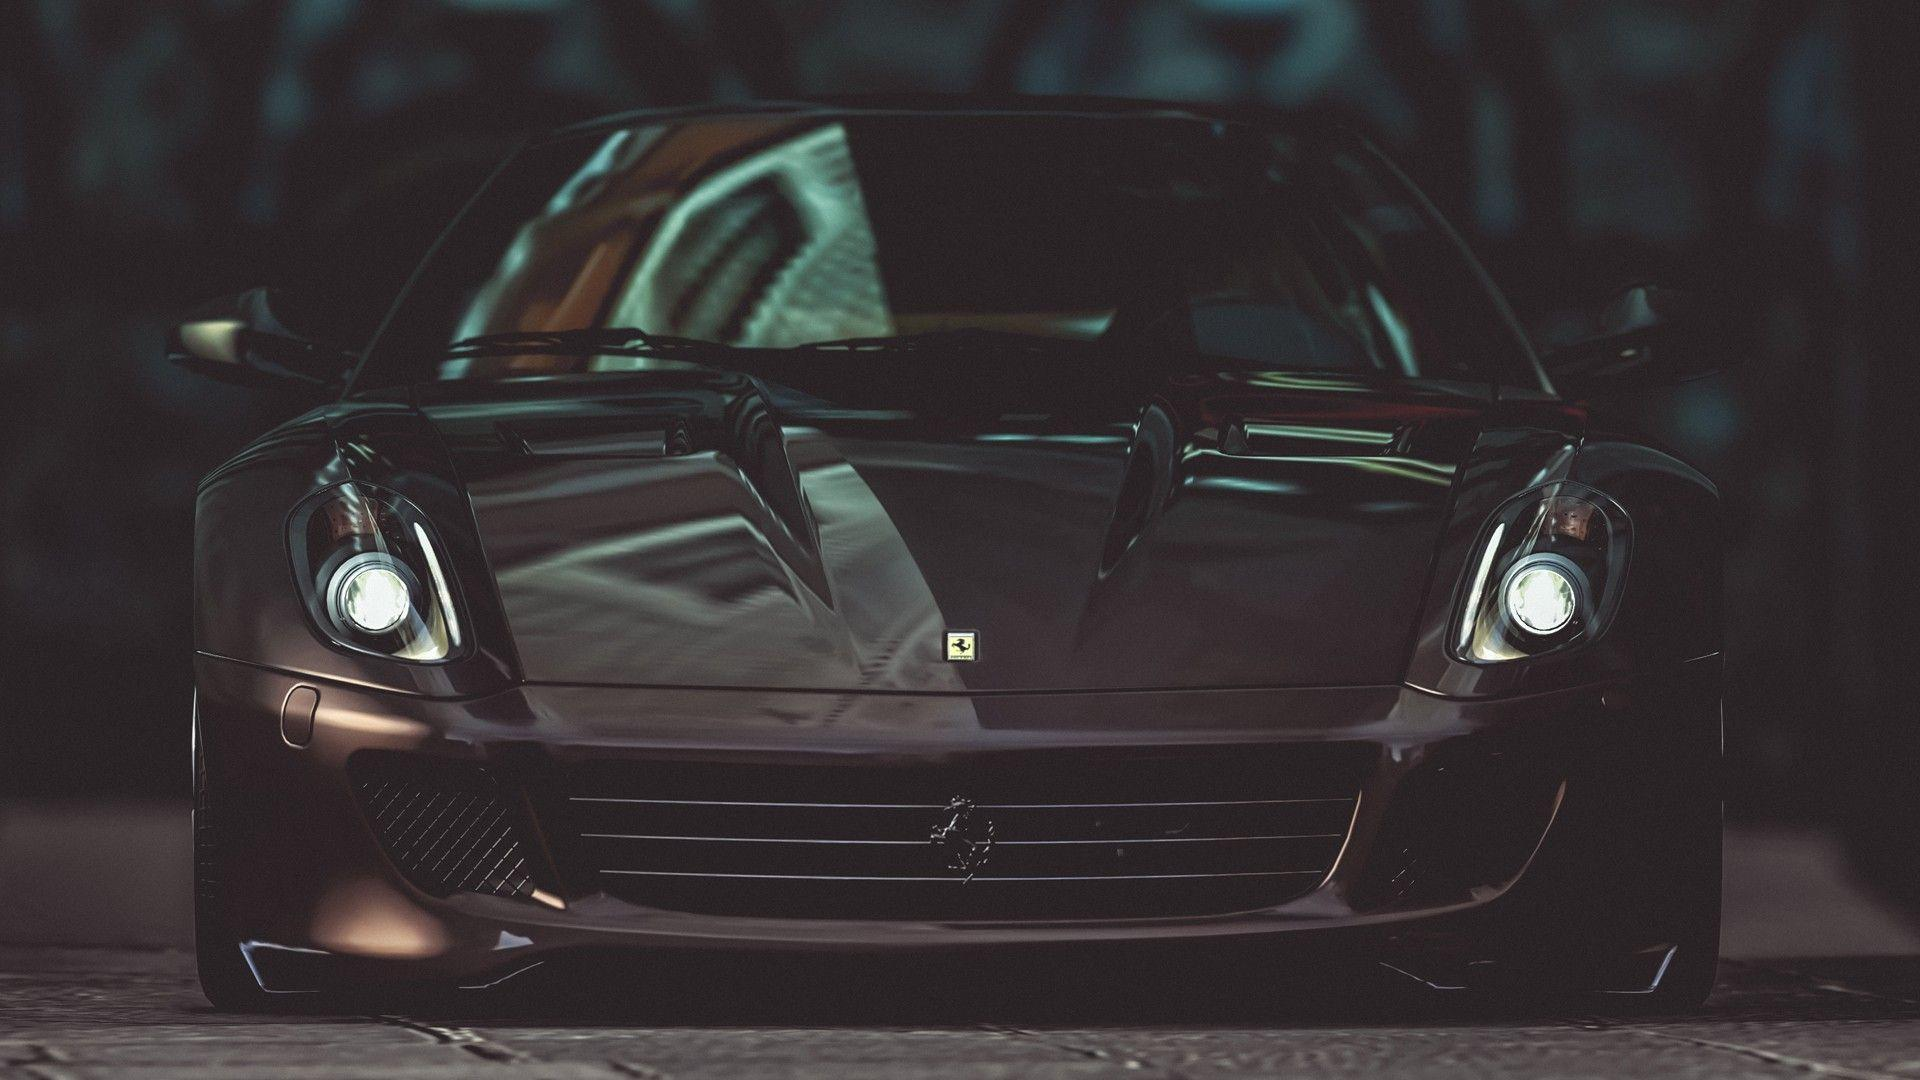 Black Ferrari Wallpaper   Cars Wallpapers (14633) Ilikewalls.